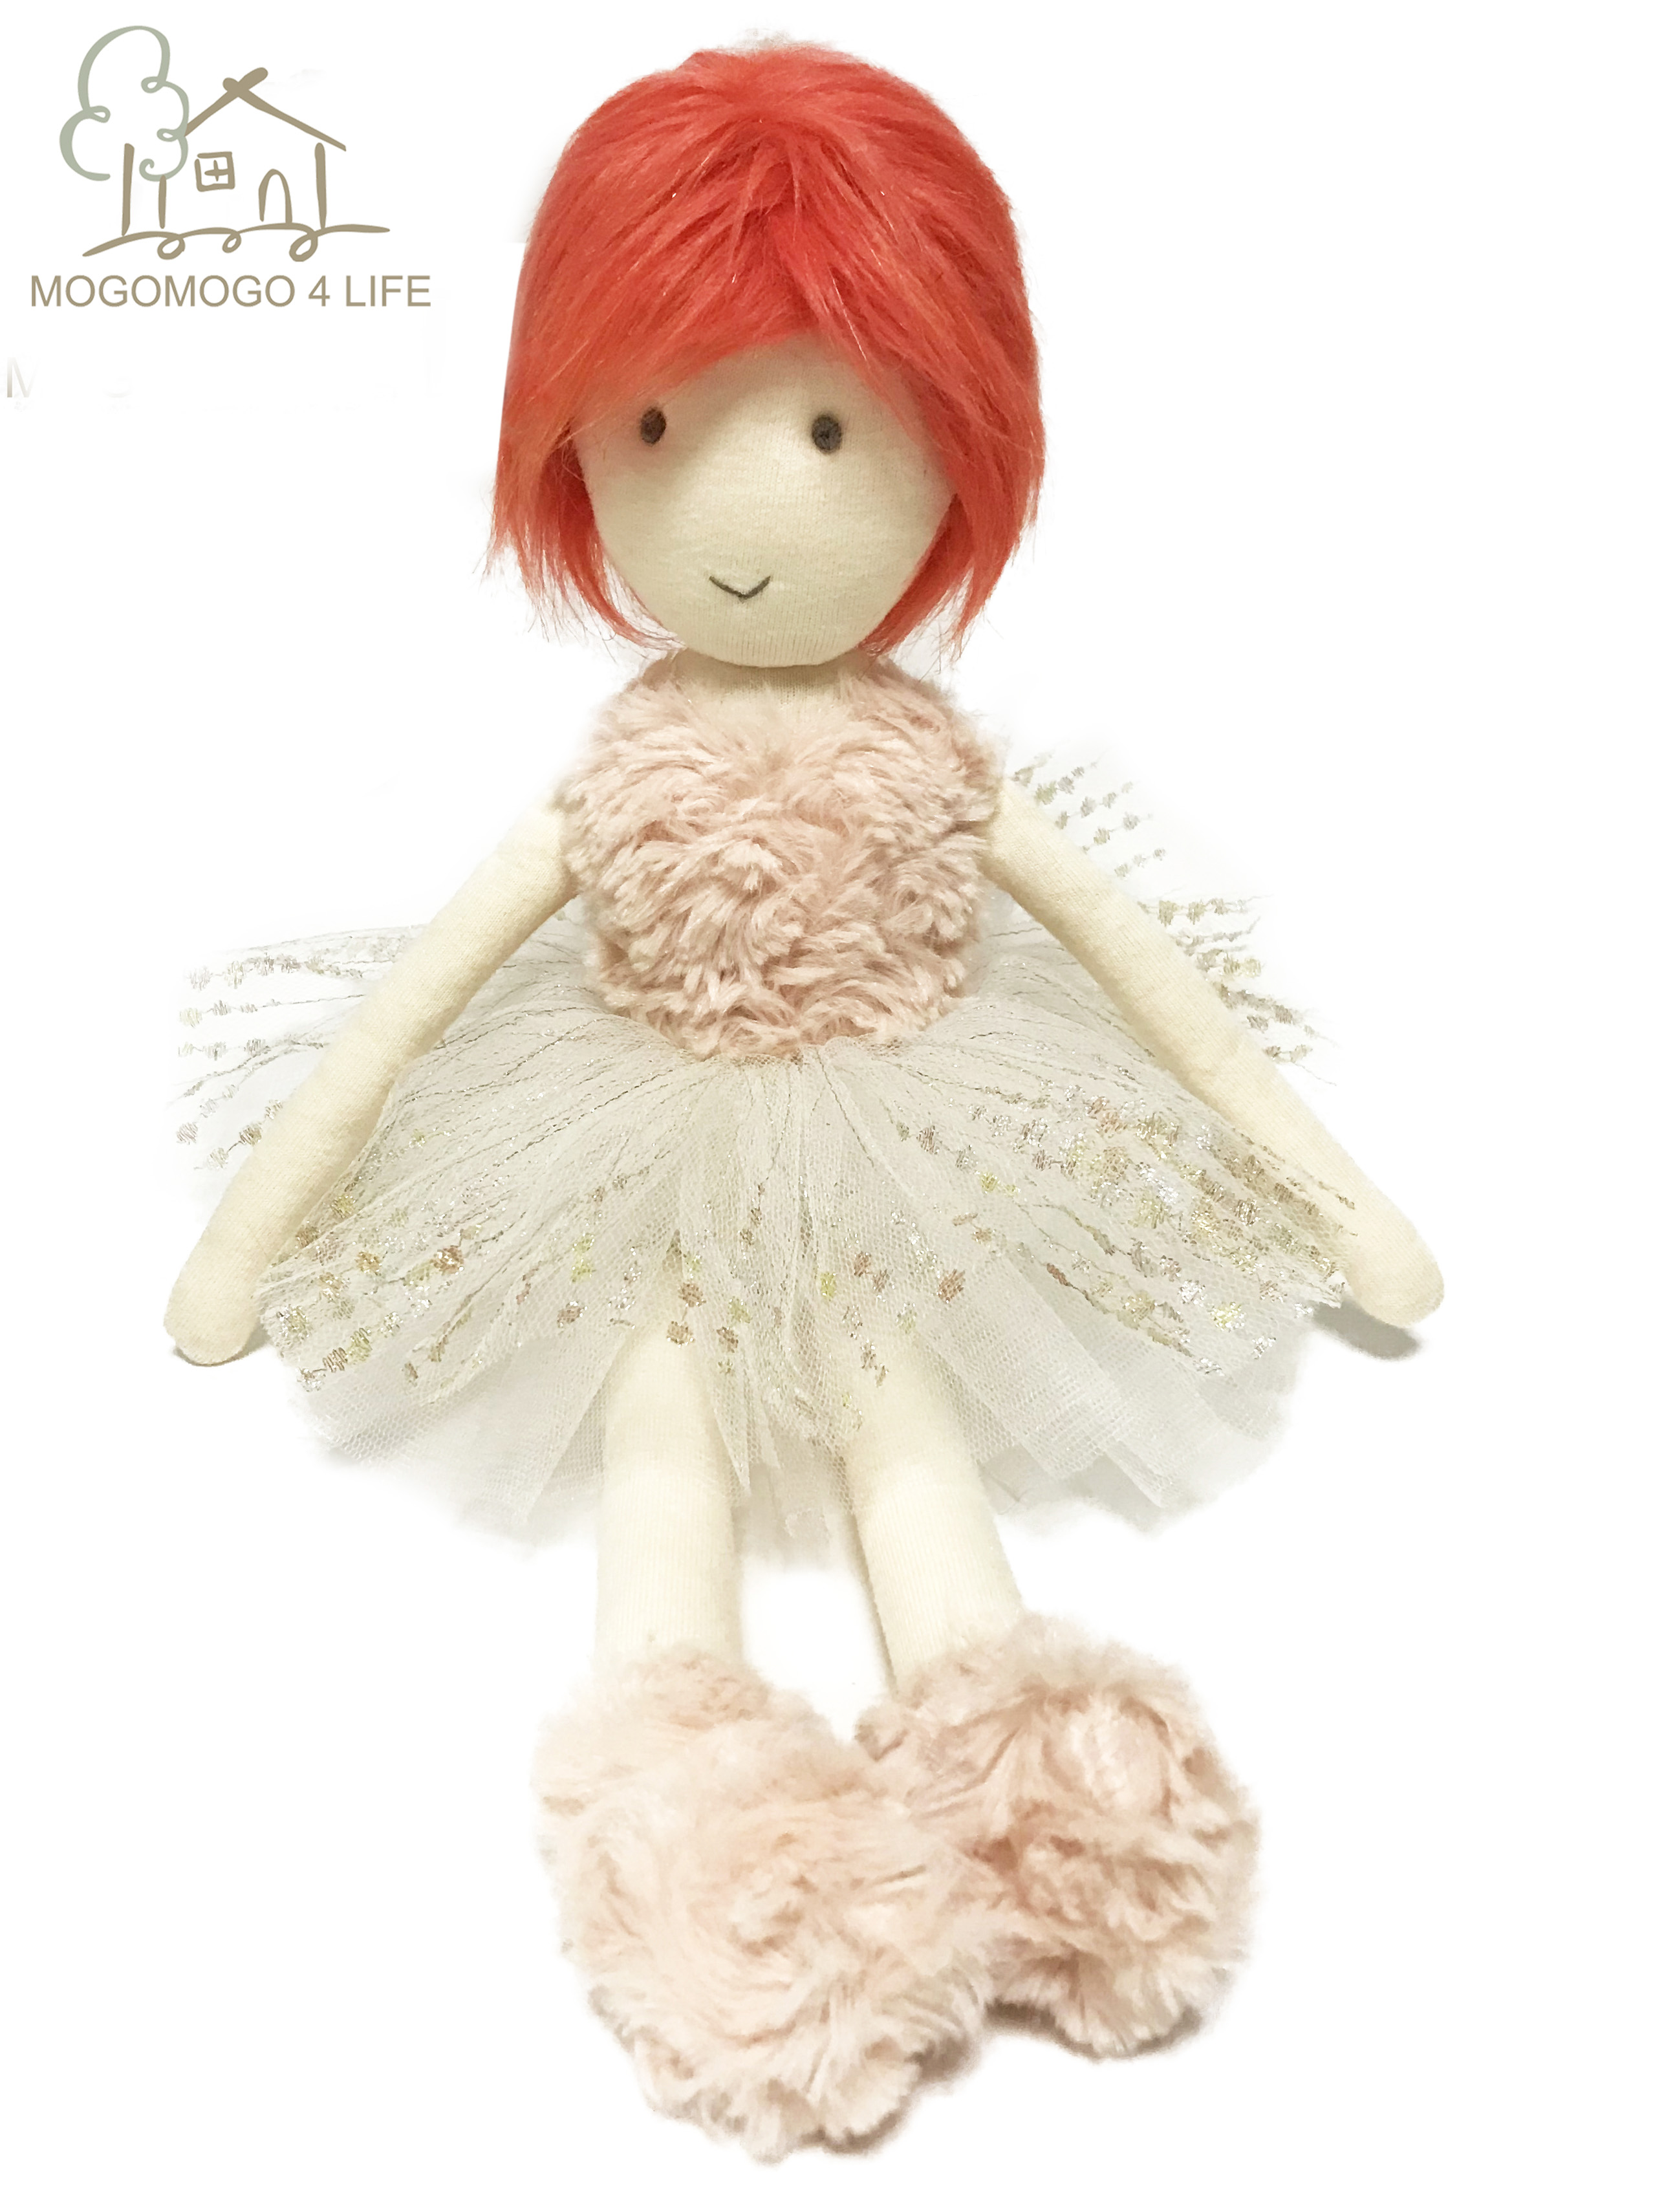 Luxury Handmade Stuffed Girl Plush Toys With Red Hair Premium Present Option Fashion Pink Ballerina Girl Doll Princess Girl Doll